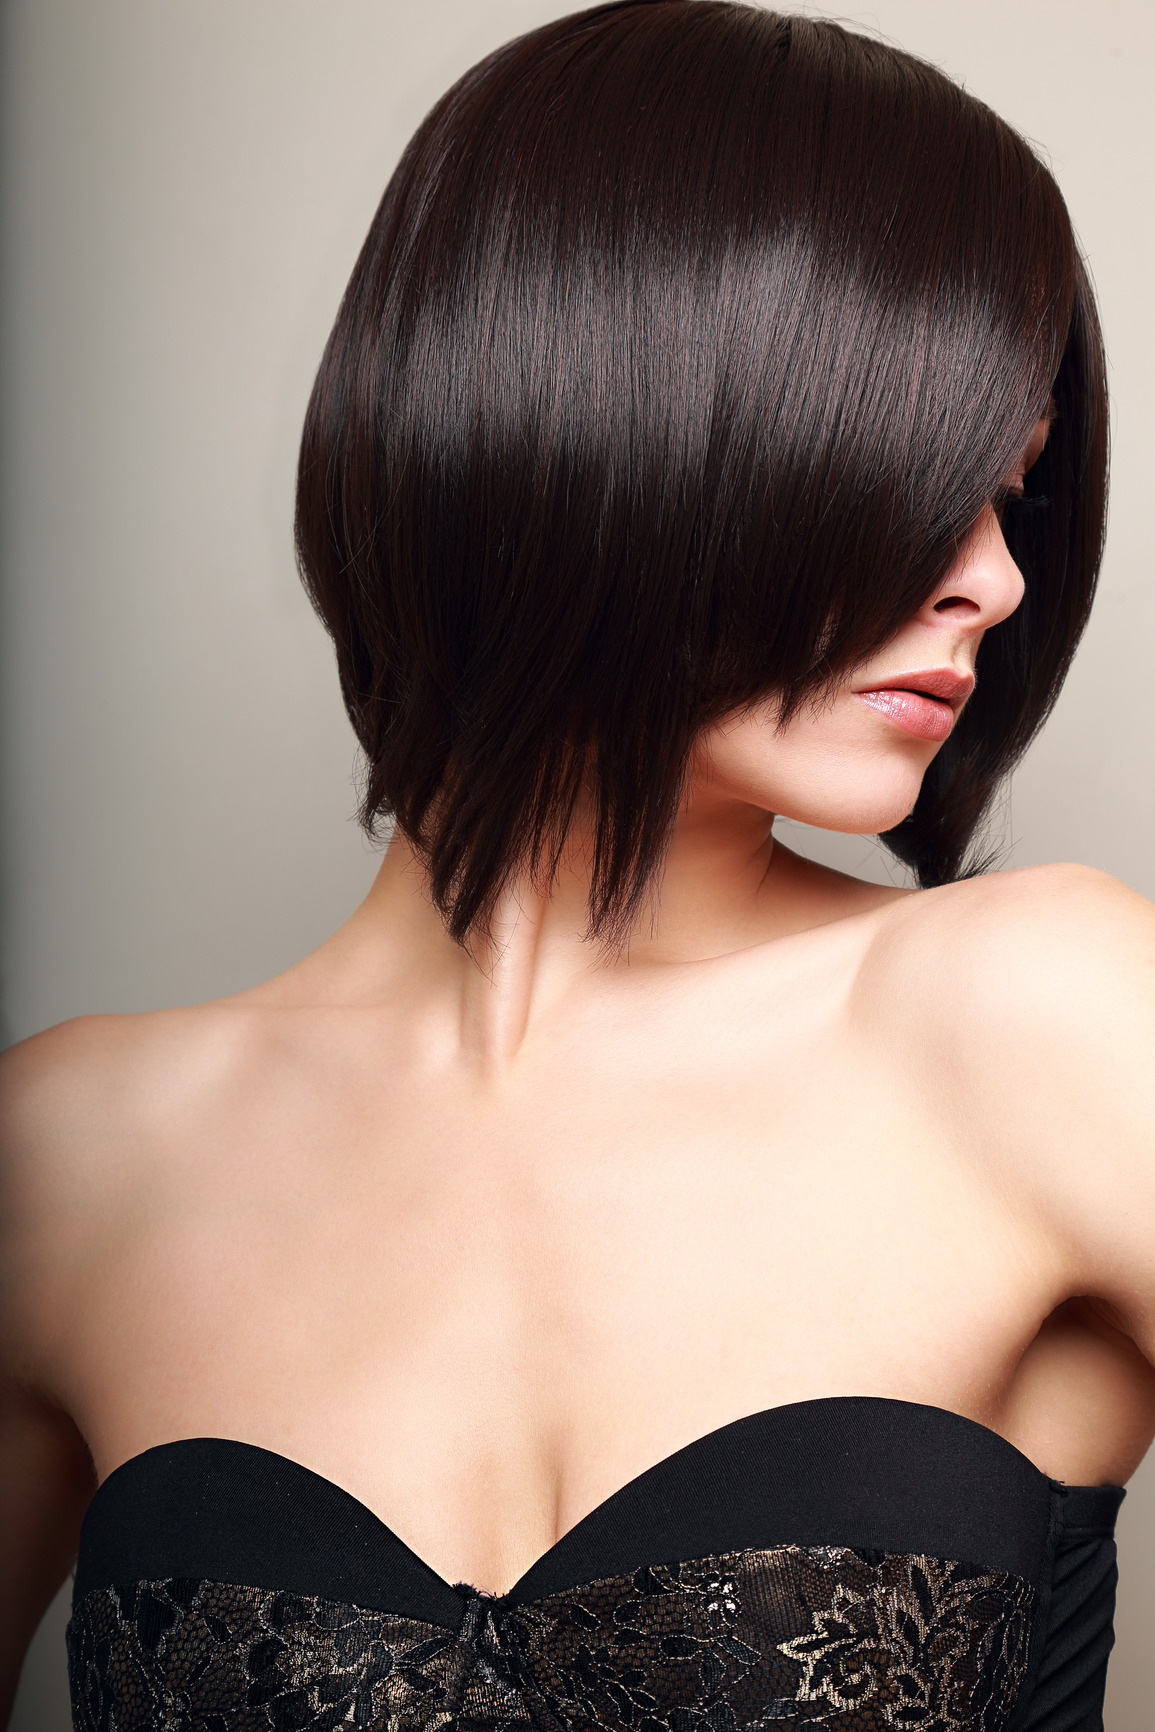 photodune-7592539-beautiful-sexy-woman-looking-black-short-hair-style-closeup-m.jpg